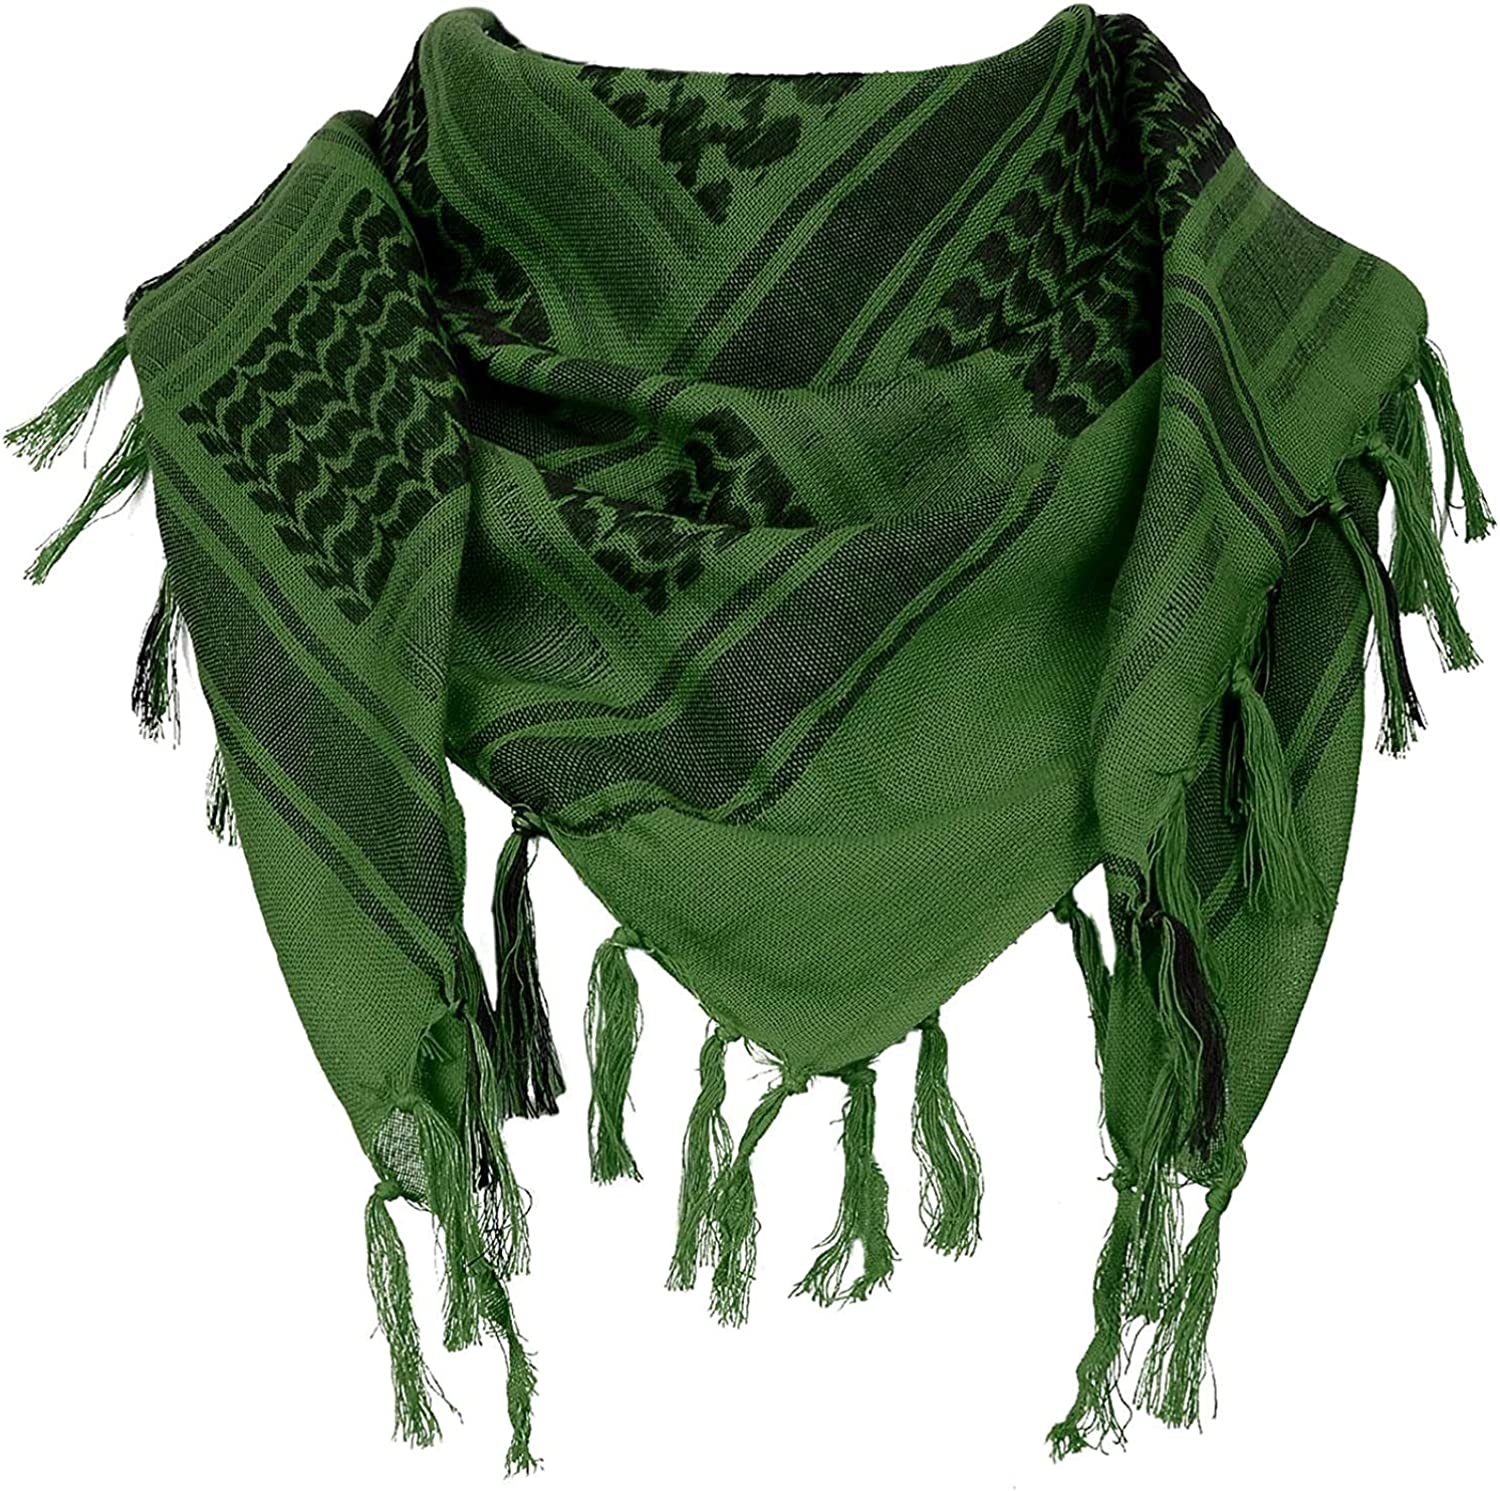 Fashion Scarves Blanket Neck Warmer MKLP Tassel Scarf Winter Ladies Scarf Large Warm Shawl Plaid Scarf Large Shawl Keep Warm and Prevent Cold For Women